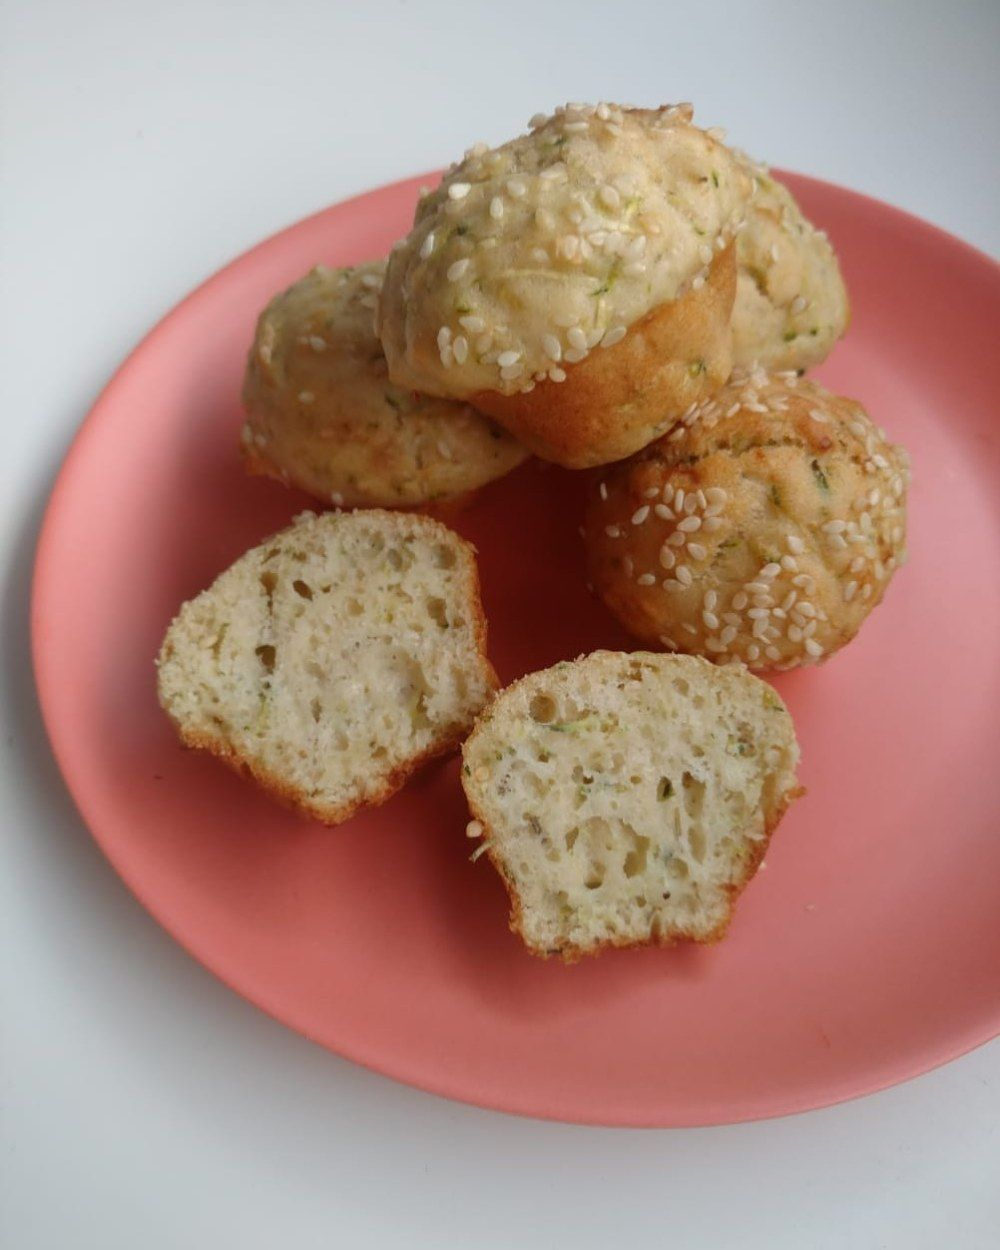 Courgette Sesame Seed Muffins With Images Muffins Courgette Recipes